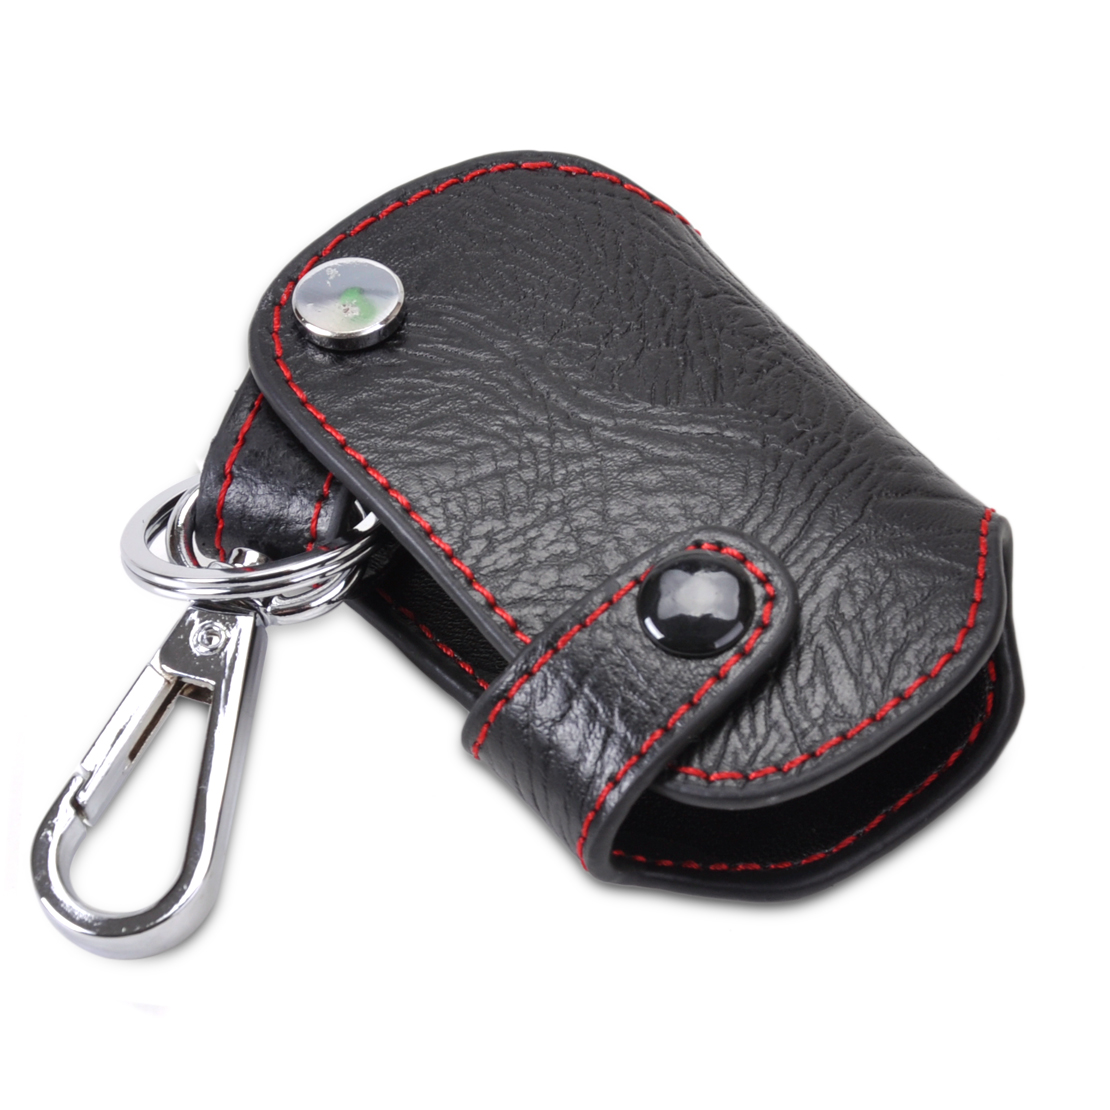 Leather Key Chain Holder Case Cover Fob For Bmw 1 3 5 6 Series Z4 X1 X3 X5 X6 Ebay